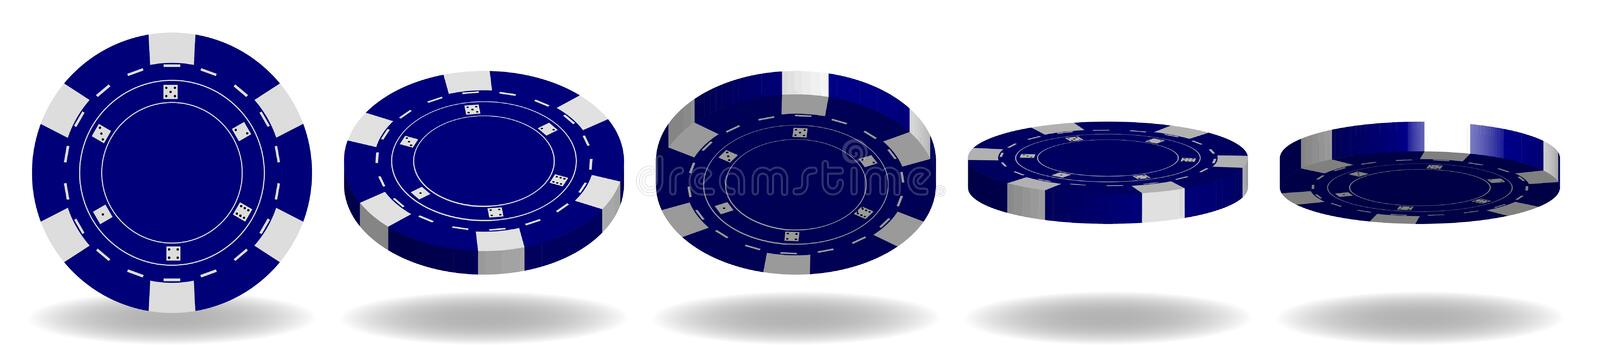 Blue poker chips vector. 3D Realistic Set. Flip different angles. Plastic poker chips sign isolated on white background royalty free illustration